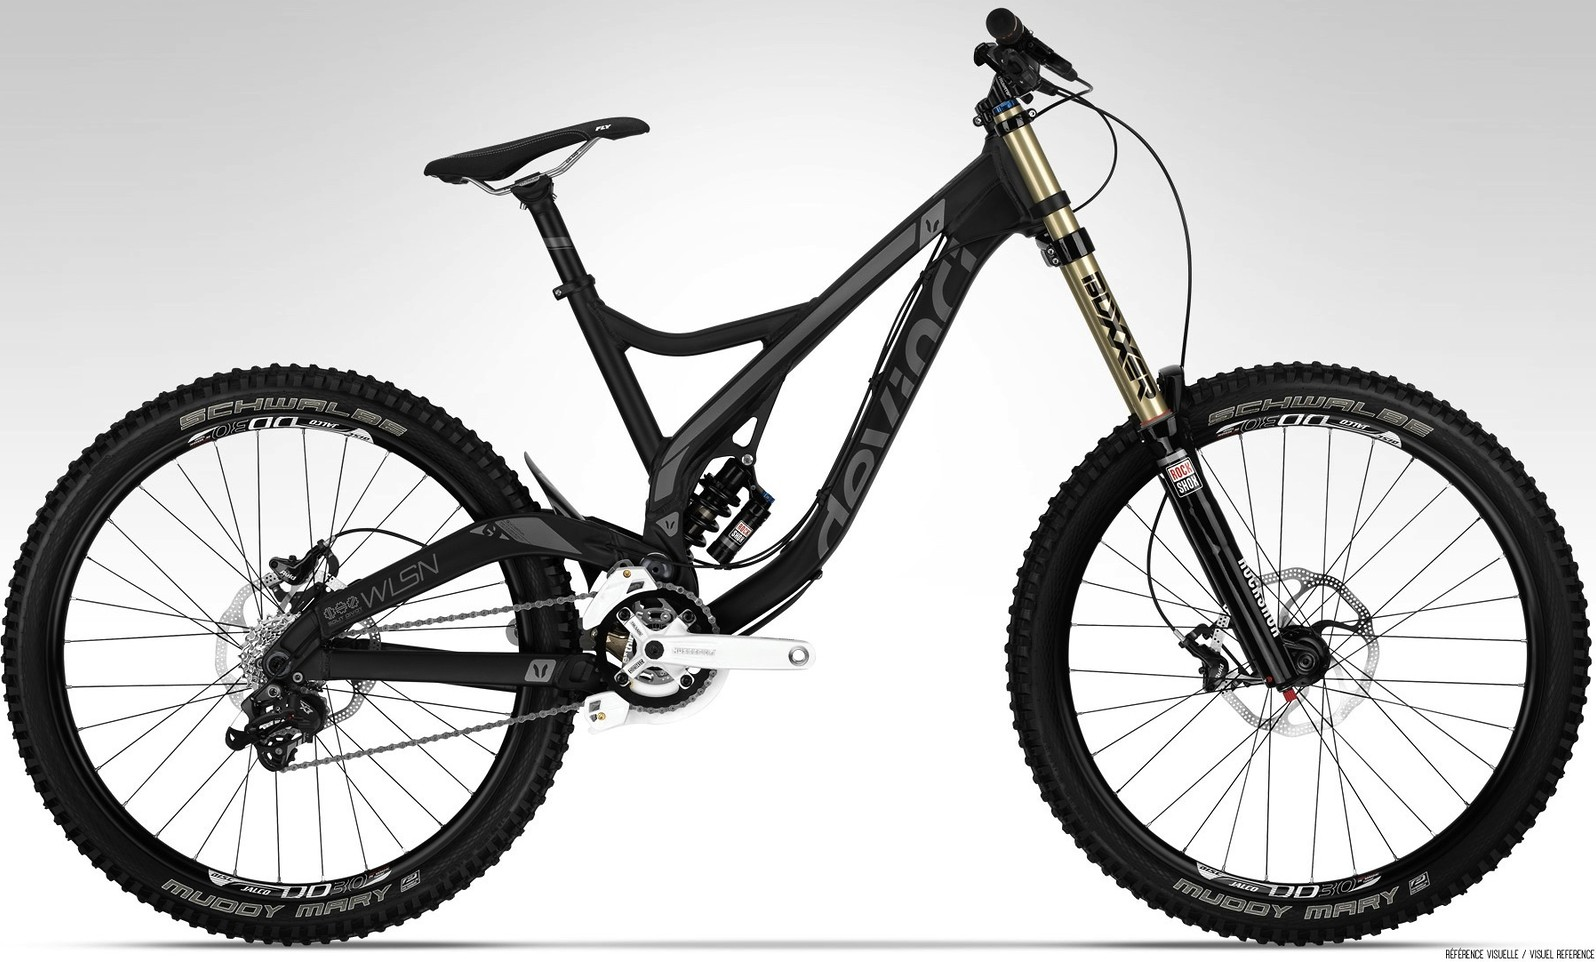 Devinci WILSON ALU:CARBON RC bike